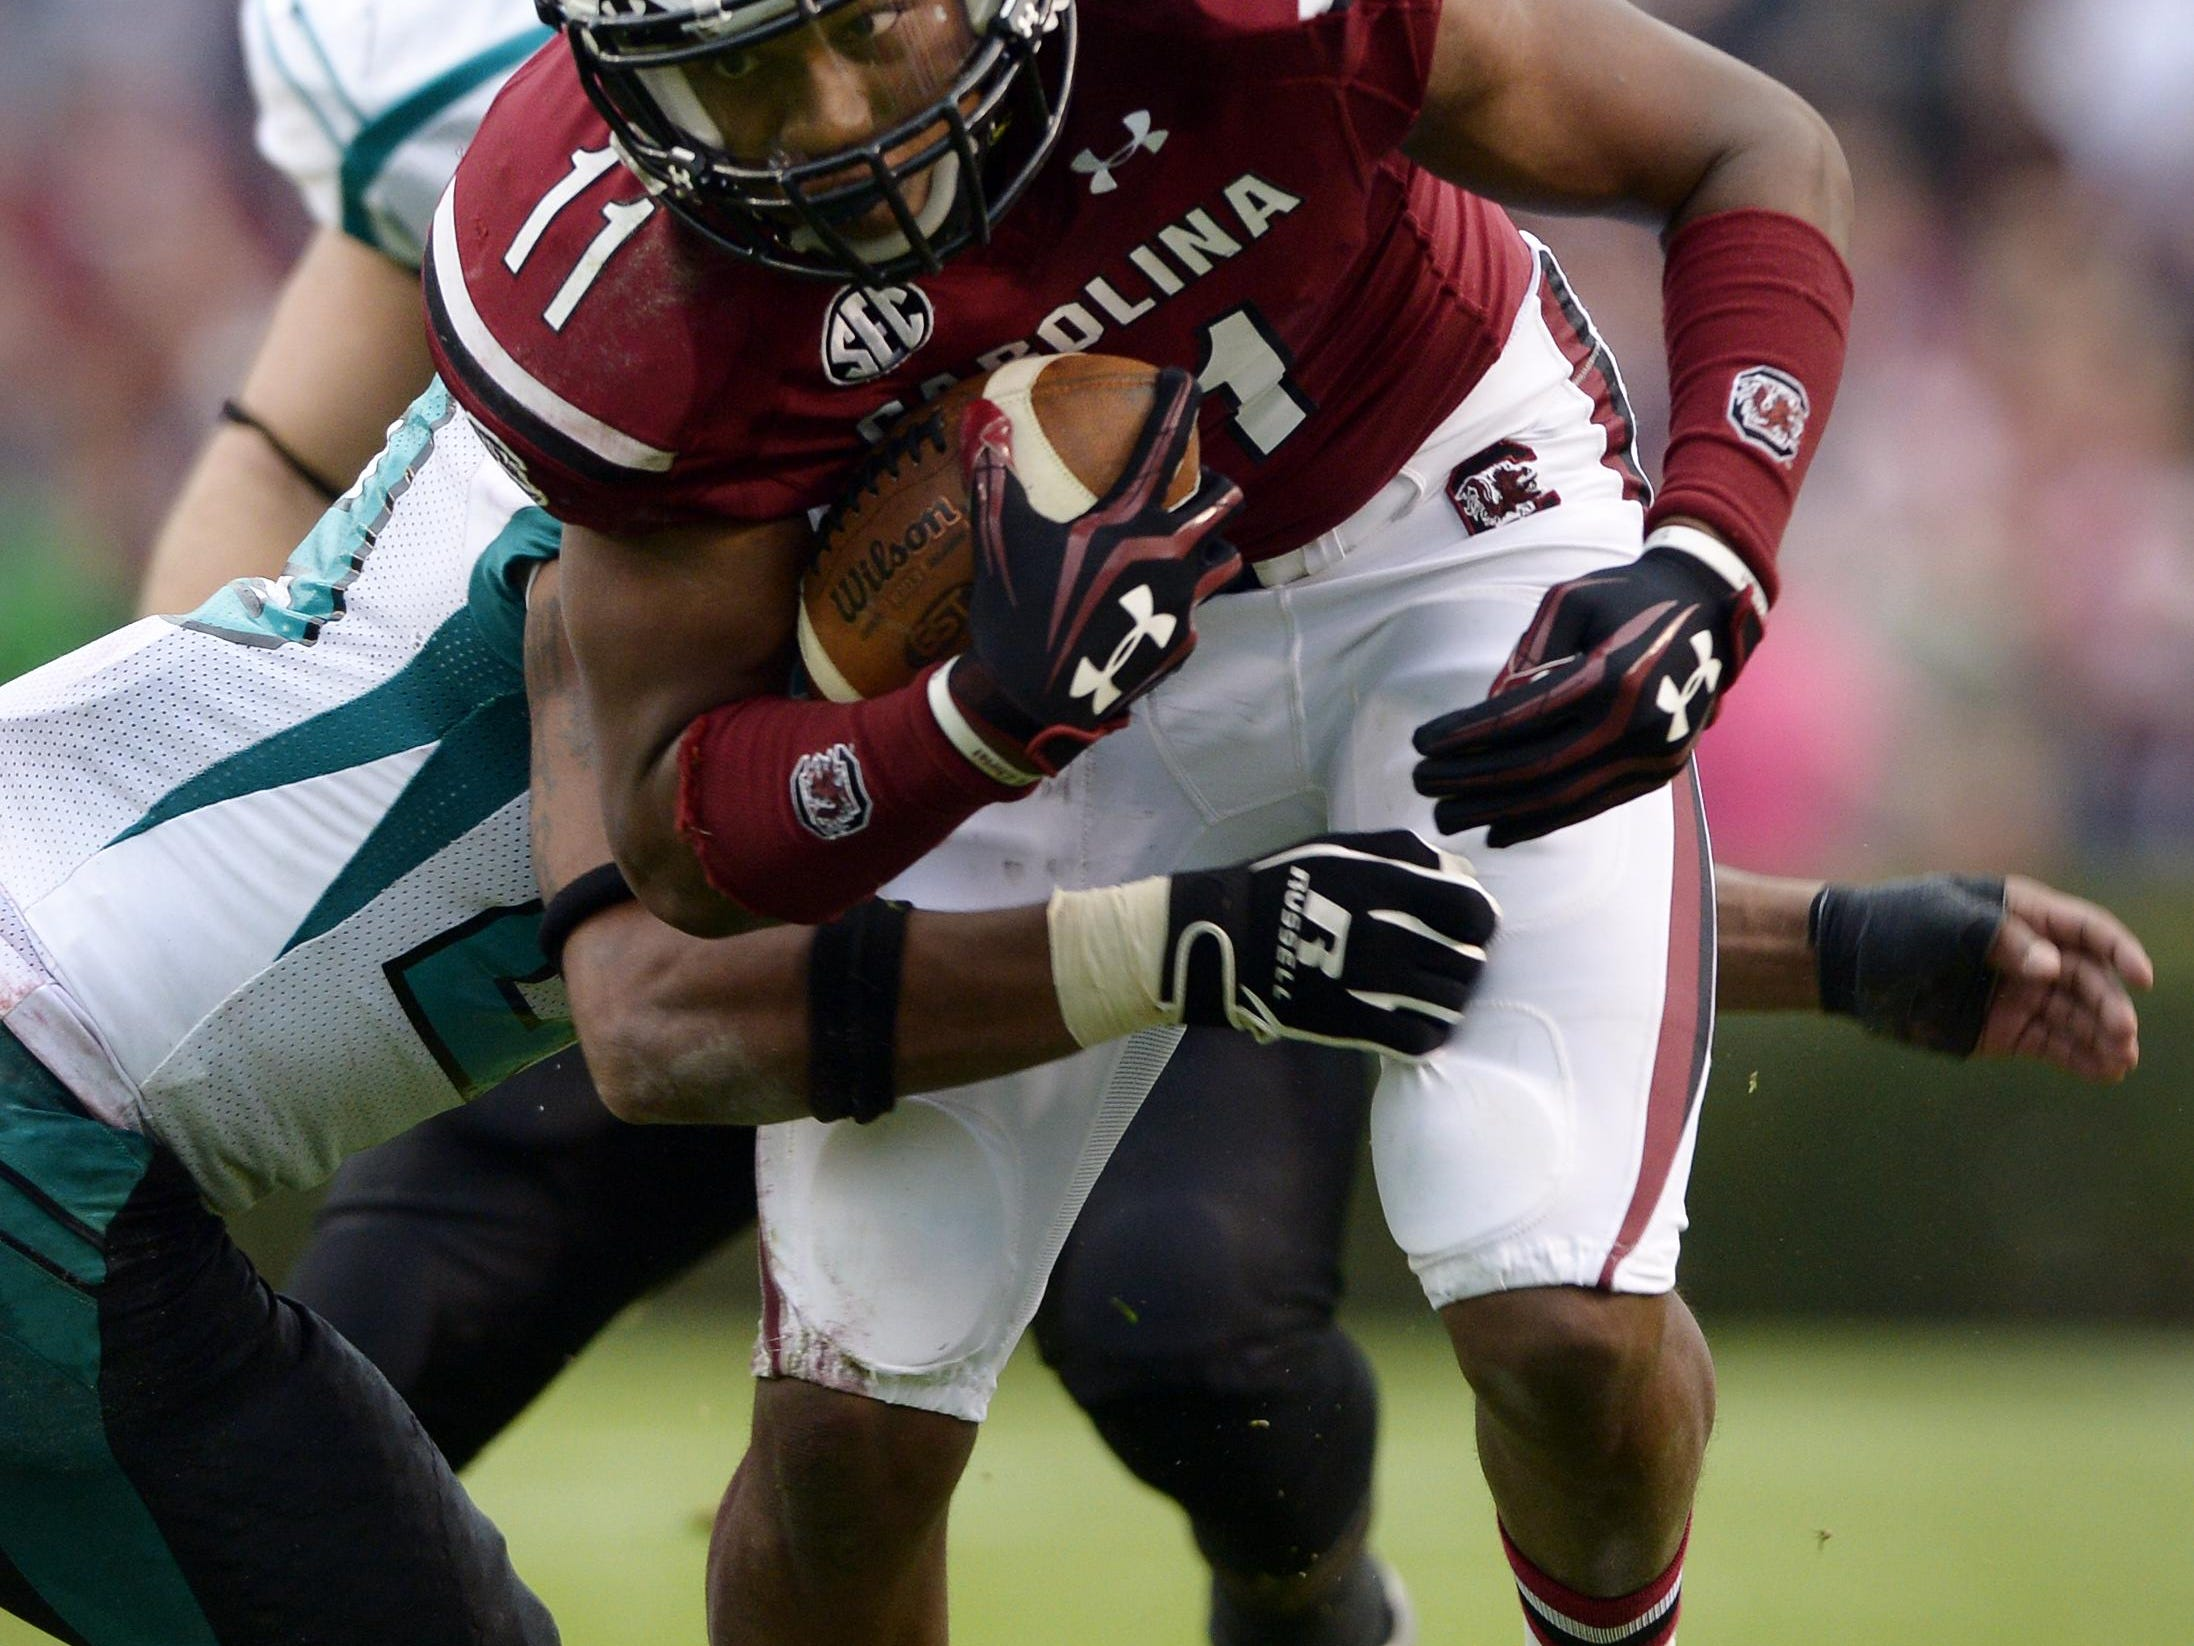 South Carolina's Pharoh Cooper earns First Team Coaches Preseason All-SEC at three positions.